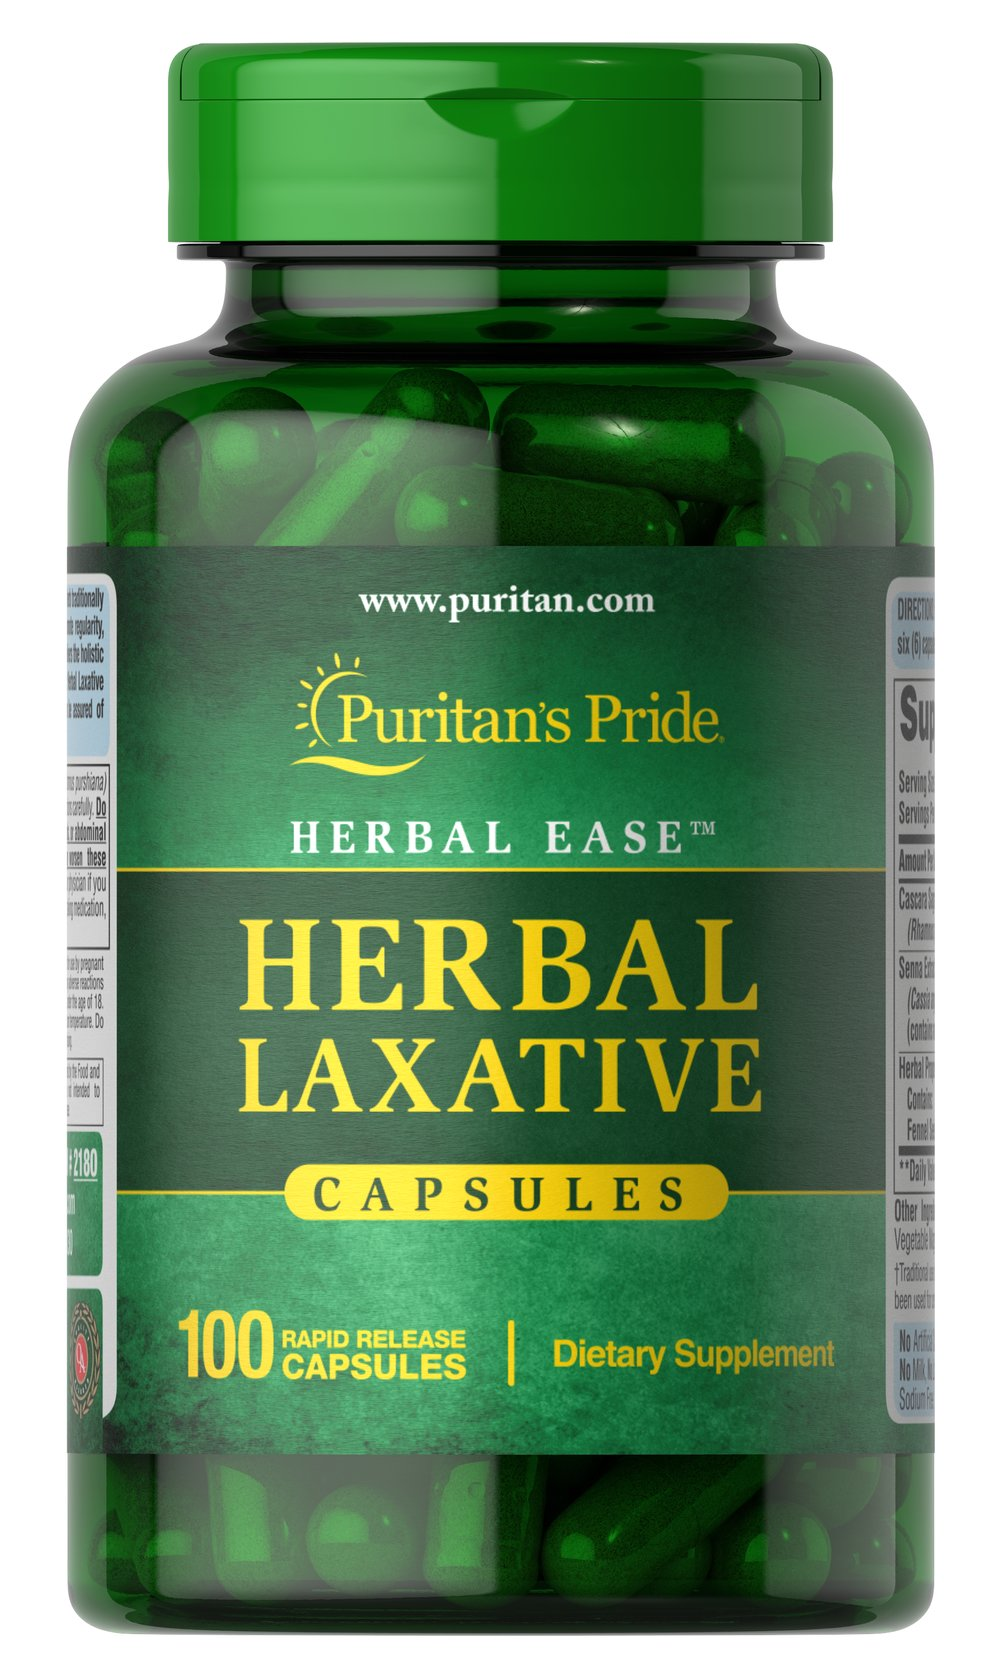 Herbal Laxative <p><strong>Herbal Laxative</strong> Capsules are an all-natural laxative designed to help with occasional constipation.** Our formula brings together the holistic properties of Cascara Sagrada and Senna, two popular herbals that help promote regularity.**</p><p>Herbal Laxative Capsules contain no harsh synthetics, to assure gentle, yet efficient, cleansing.**</p><p>Also available in Tablets. See items #30329, 30330 and 30331.</p> 10